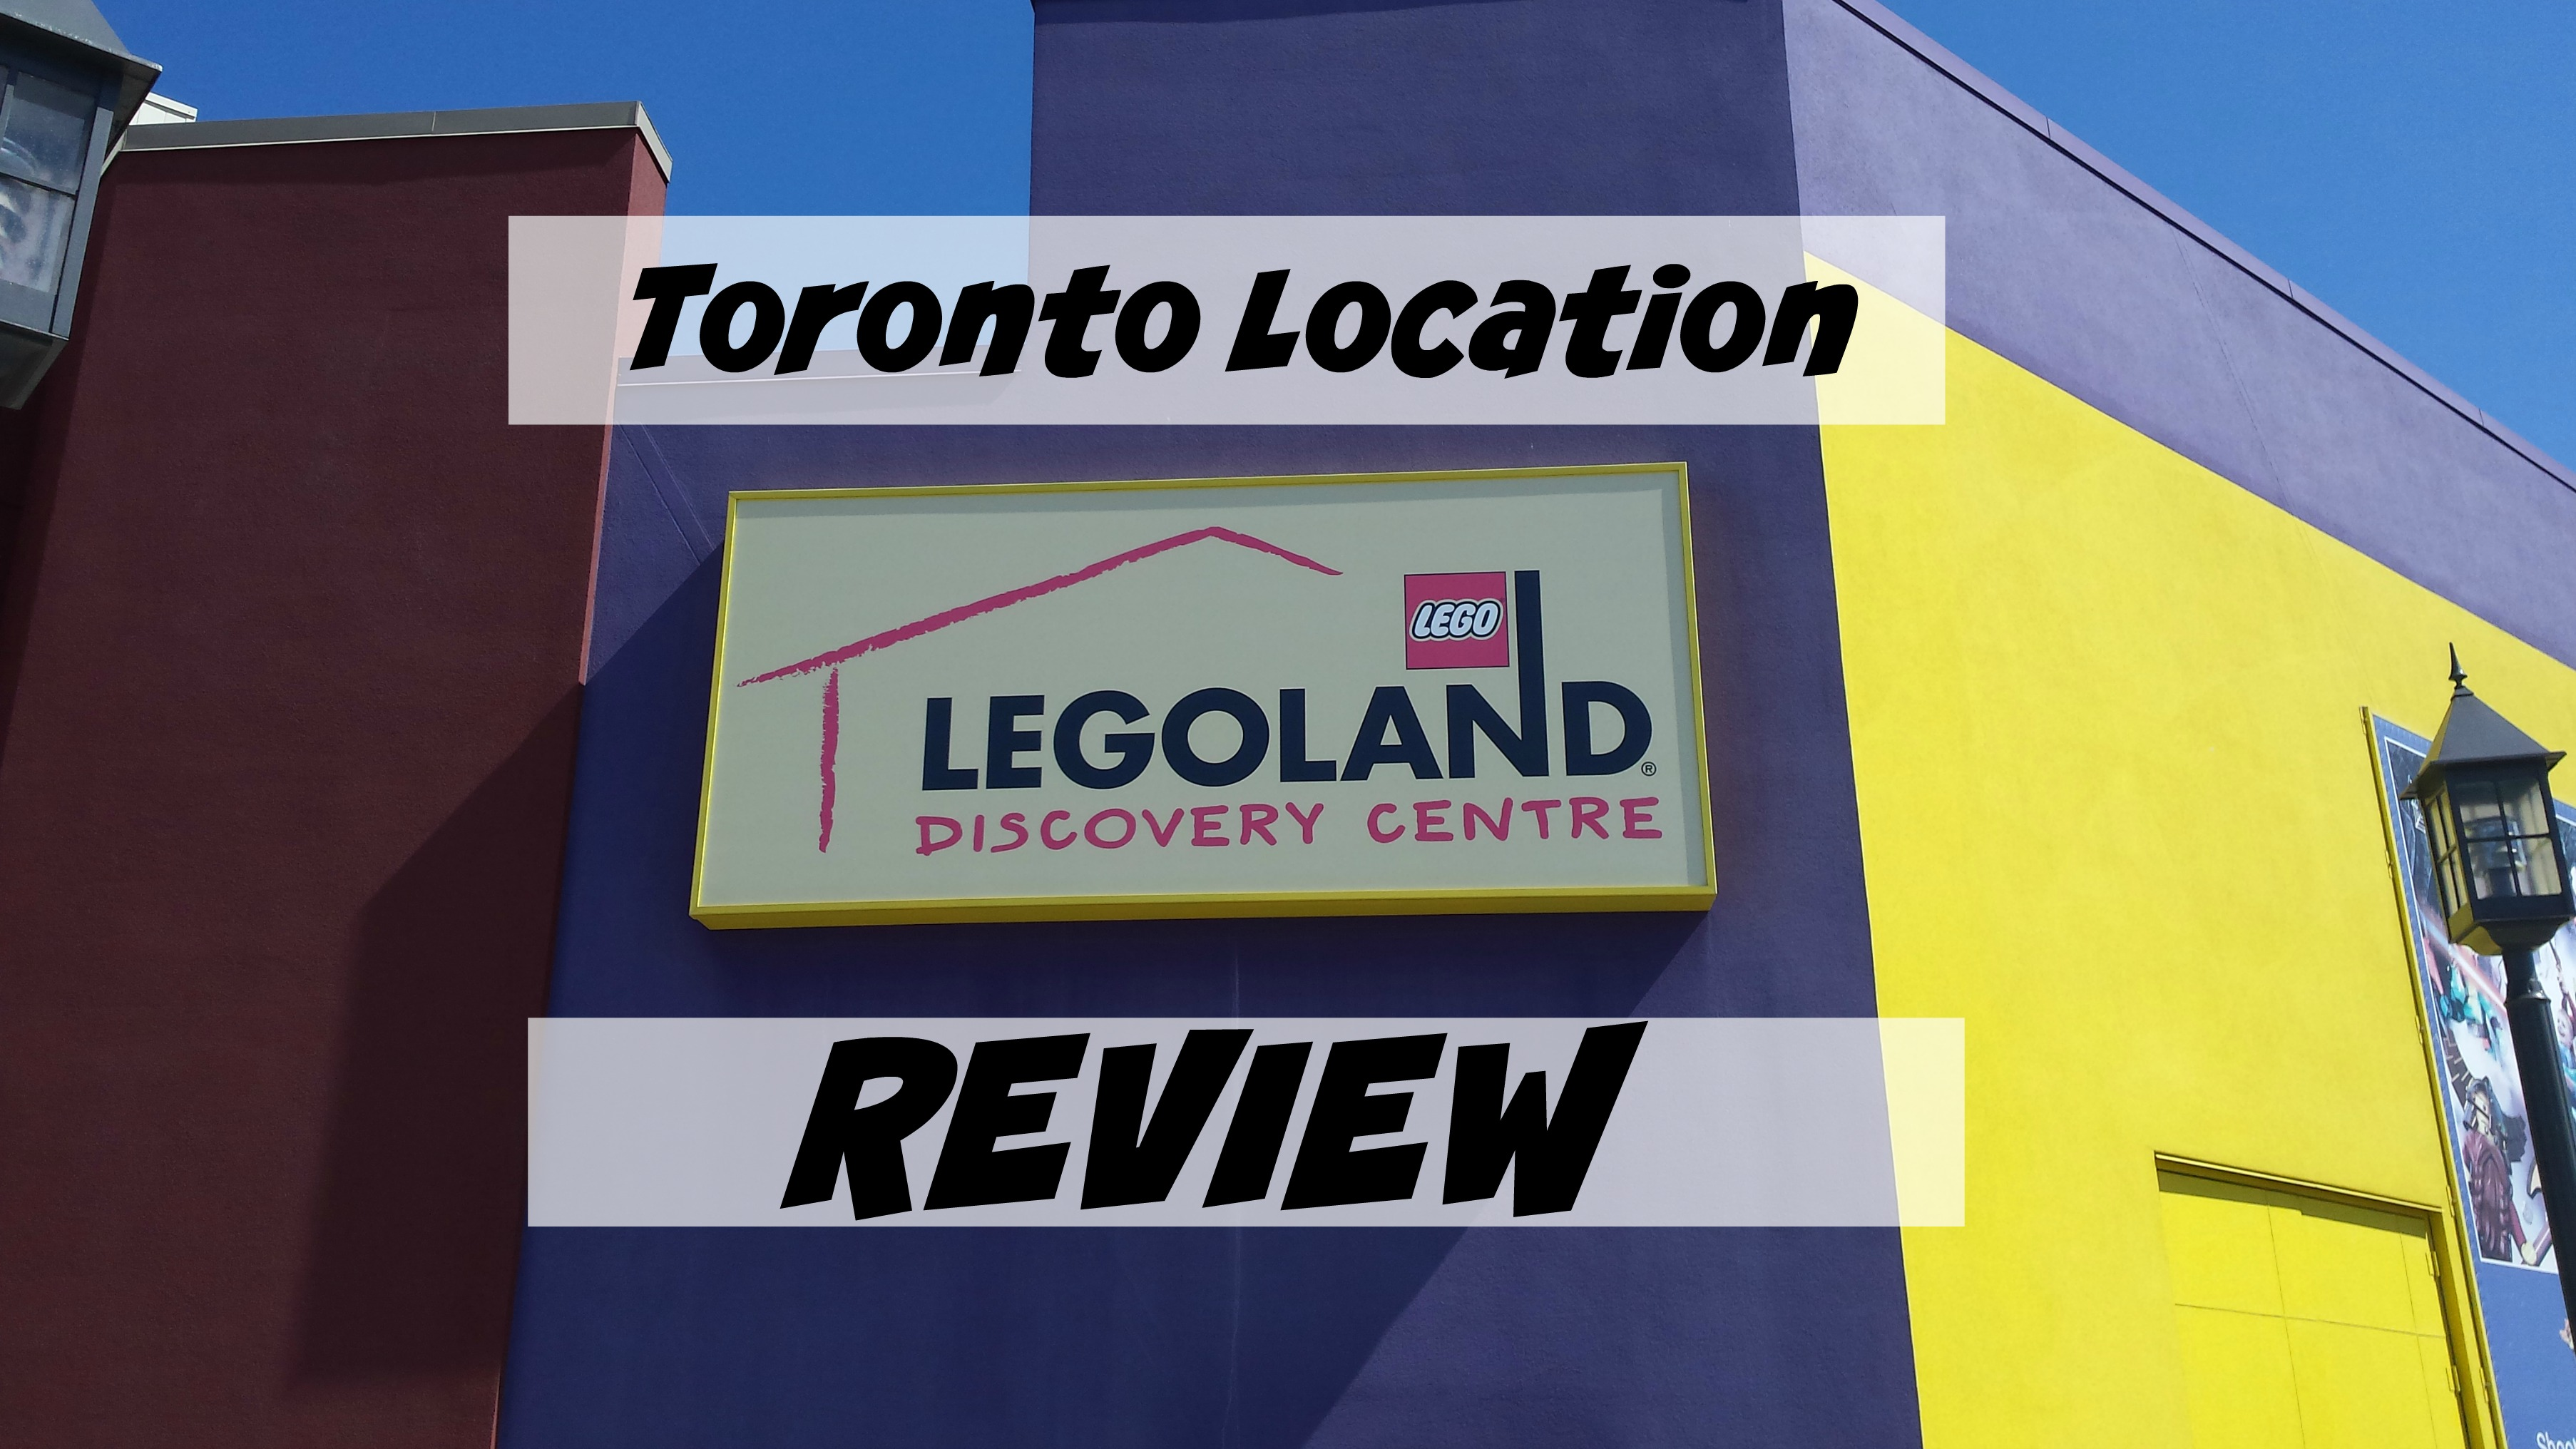 Review of Toronto LEGOLAND